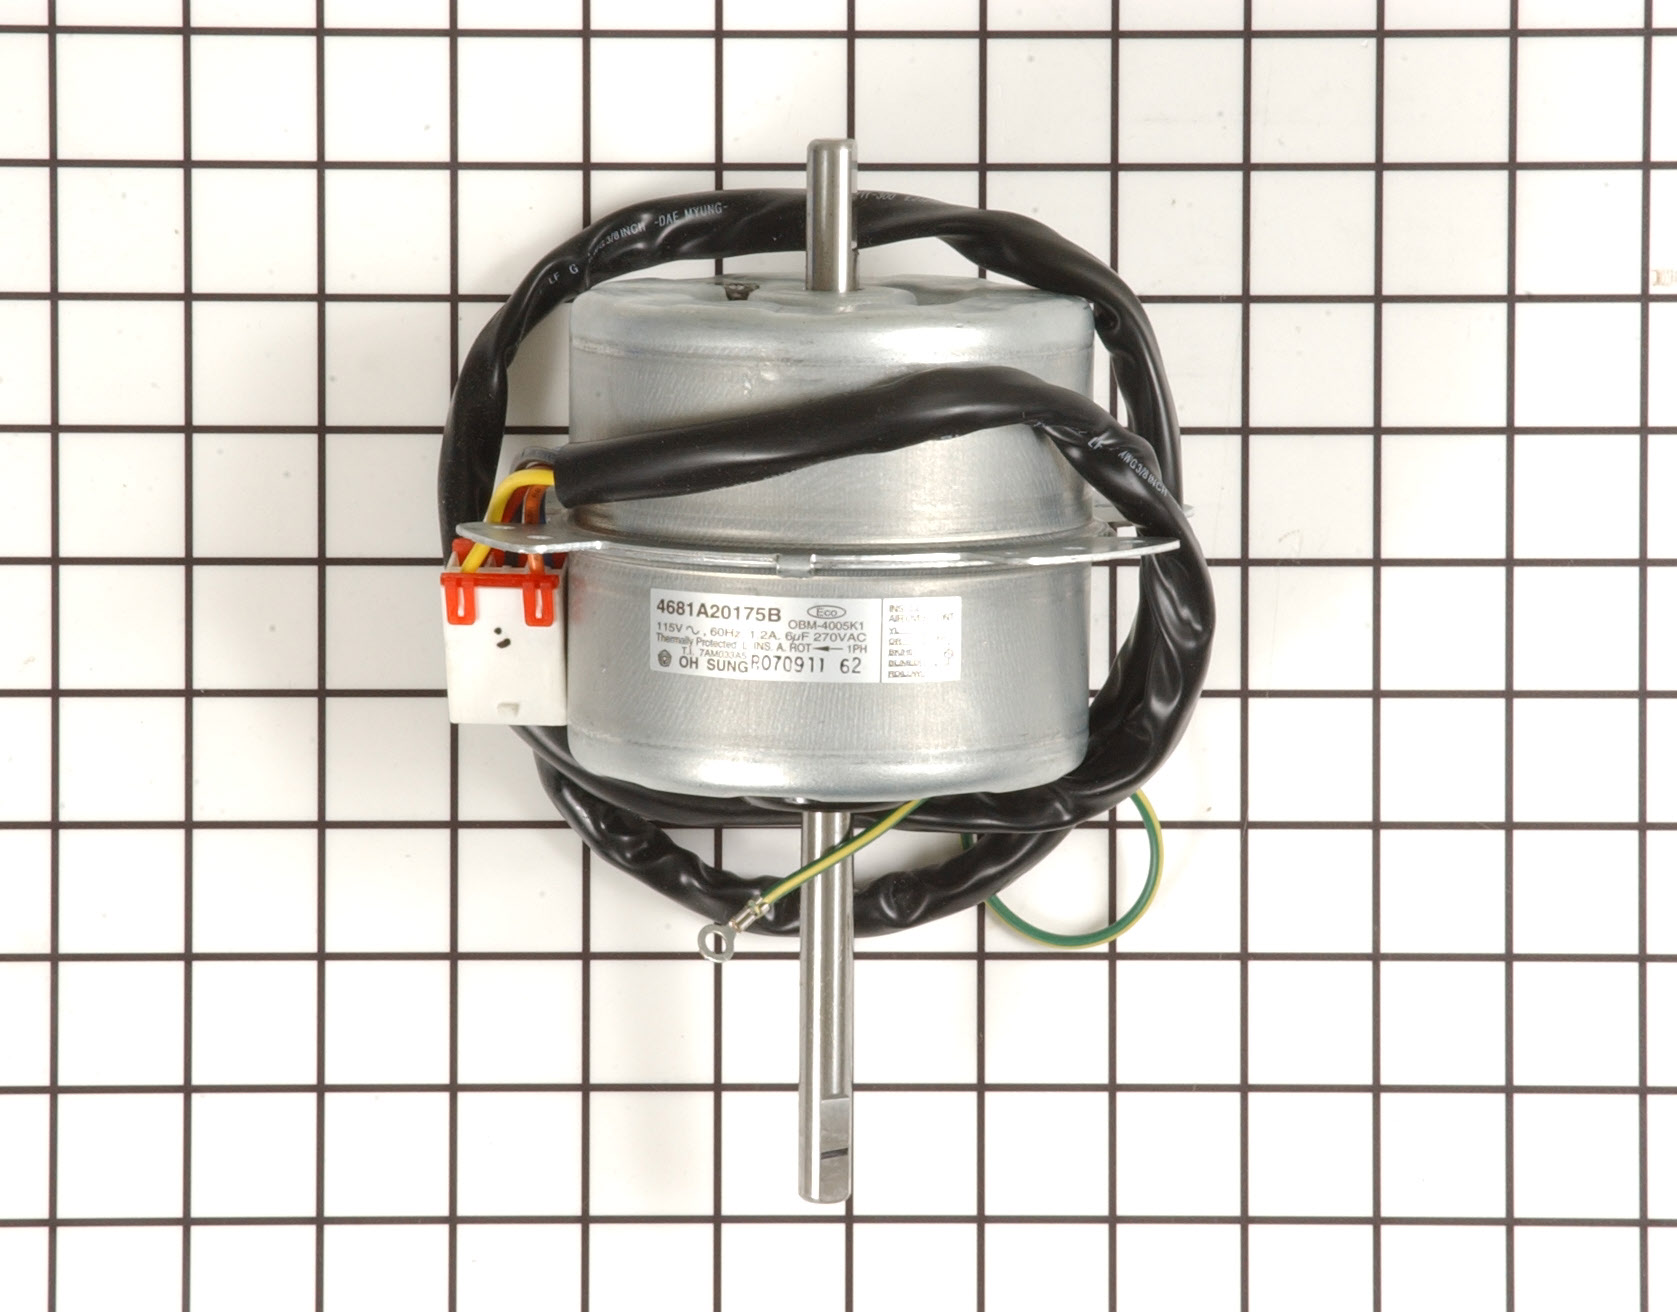 Kenmore Air Conditioner Part # 4681A20175B - Fan Motor